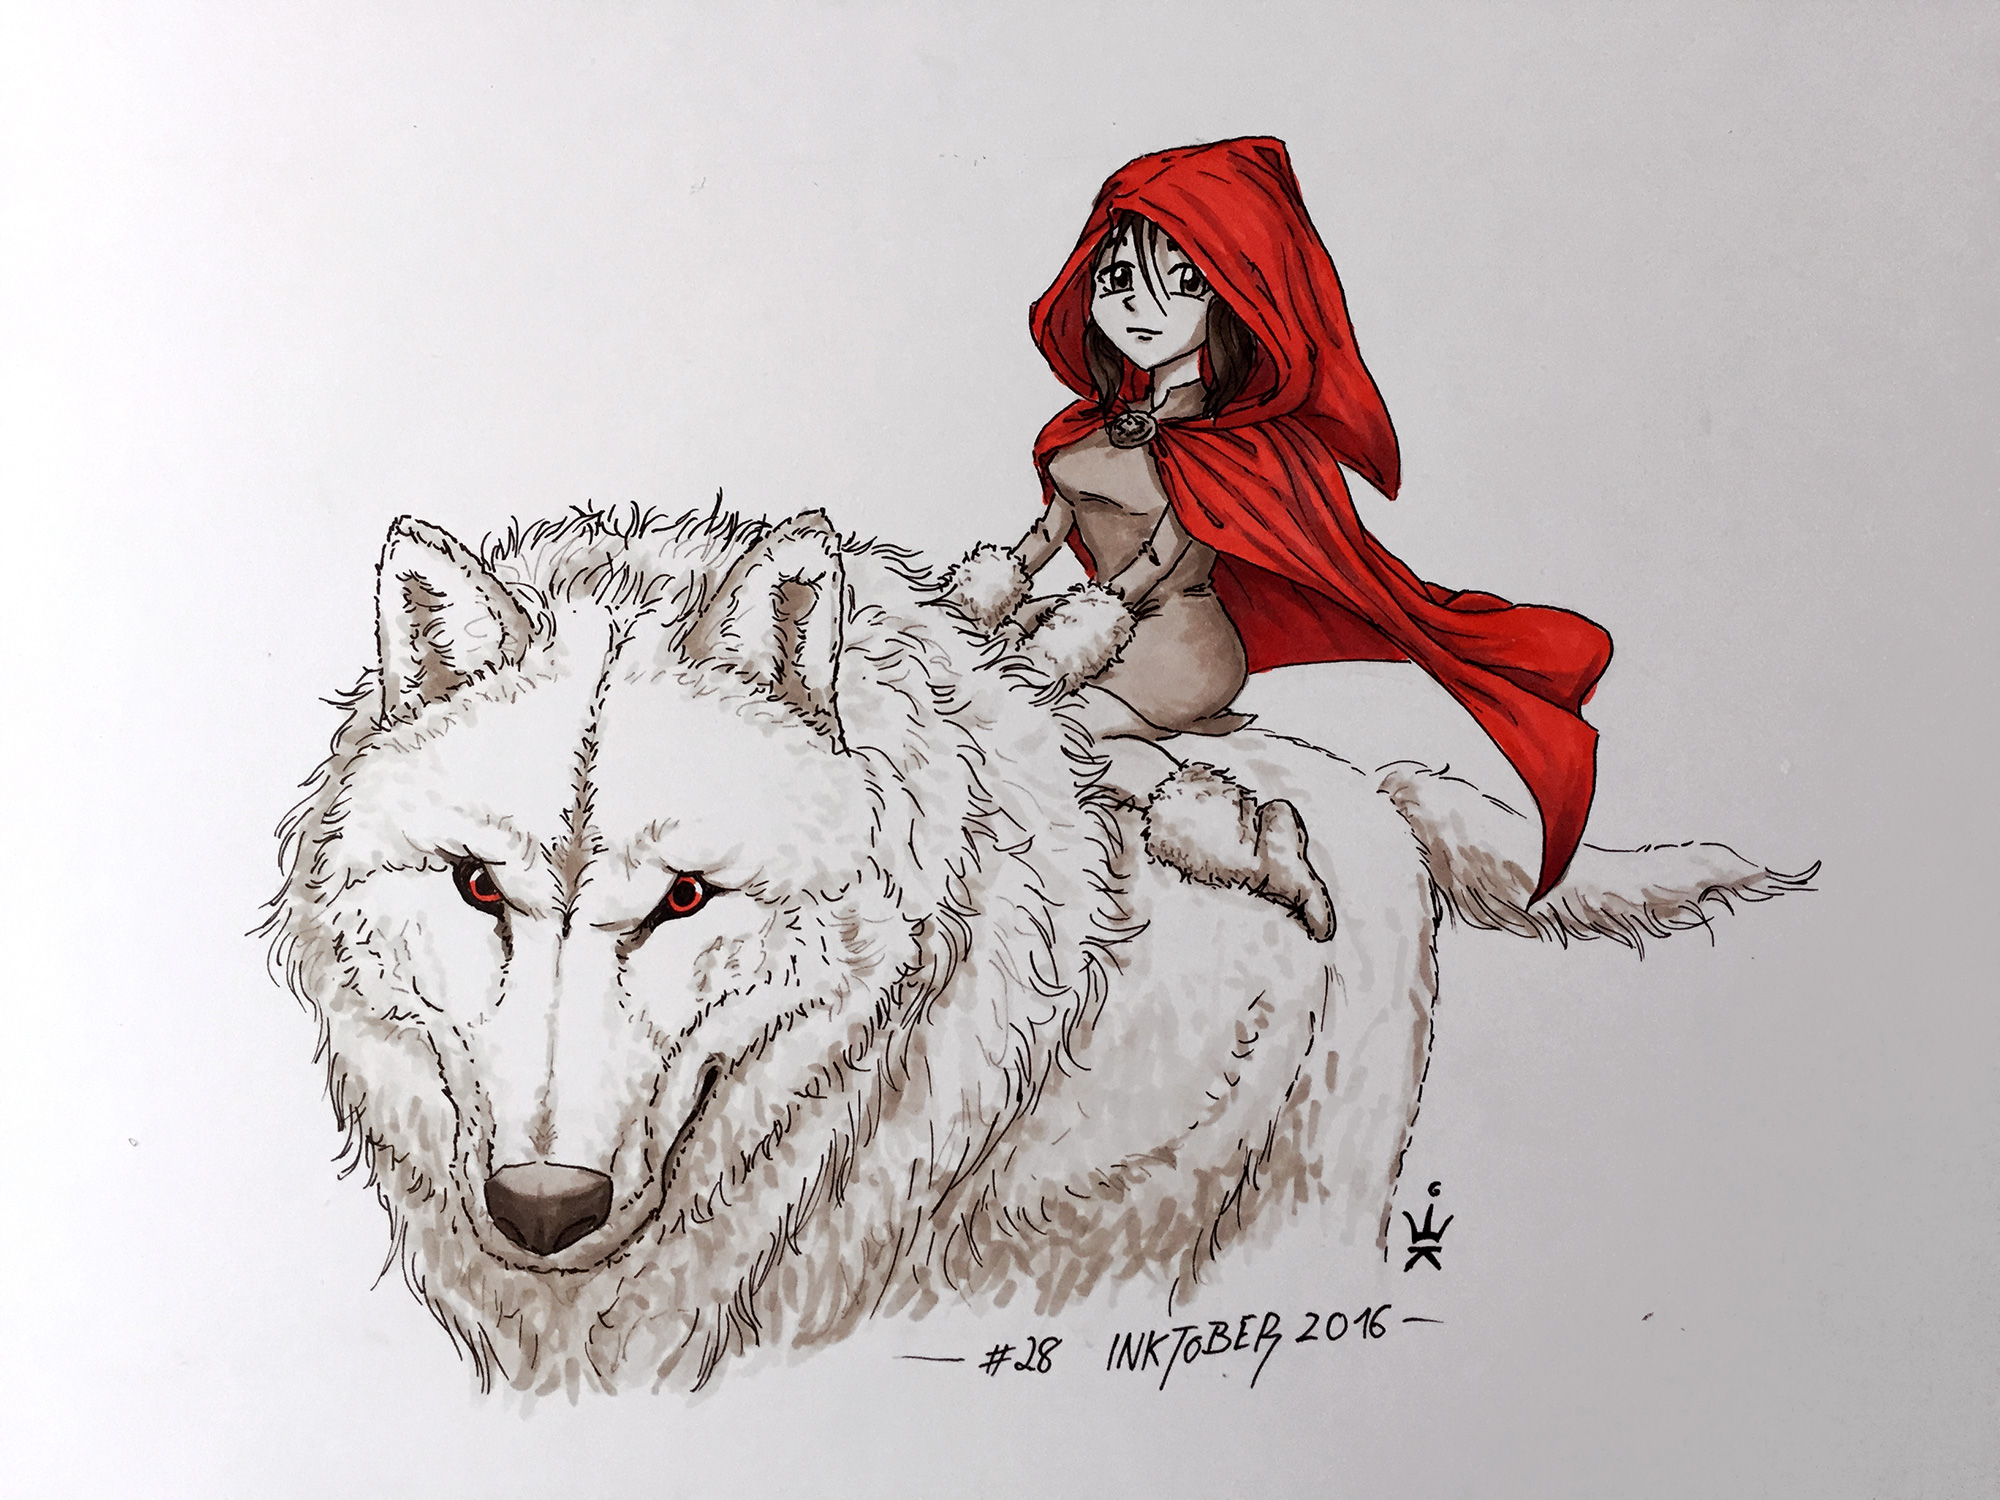 Inktober 28: Tamed (c) Esther Wagner